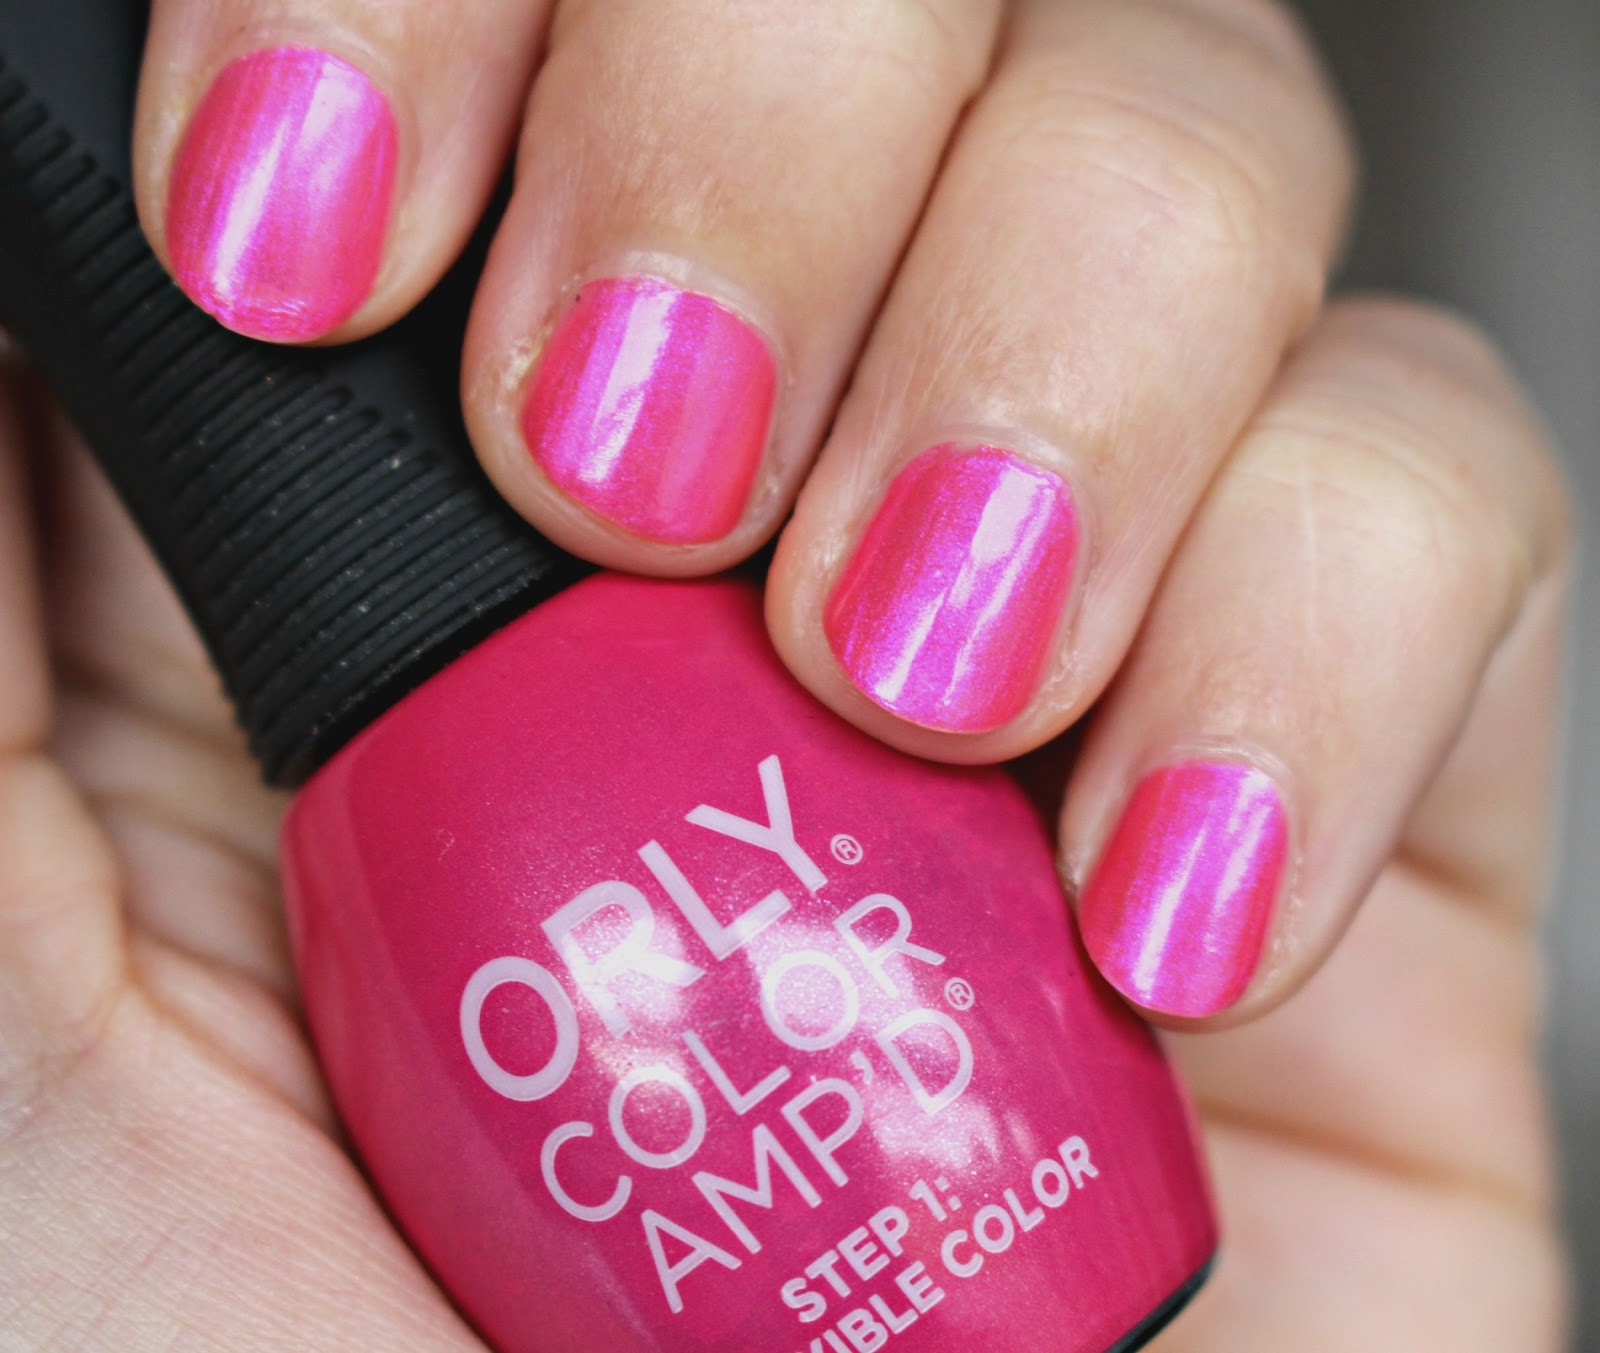 Orly Color Amp'D Who You Know